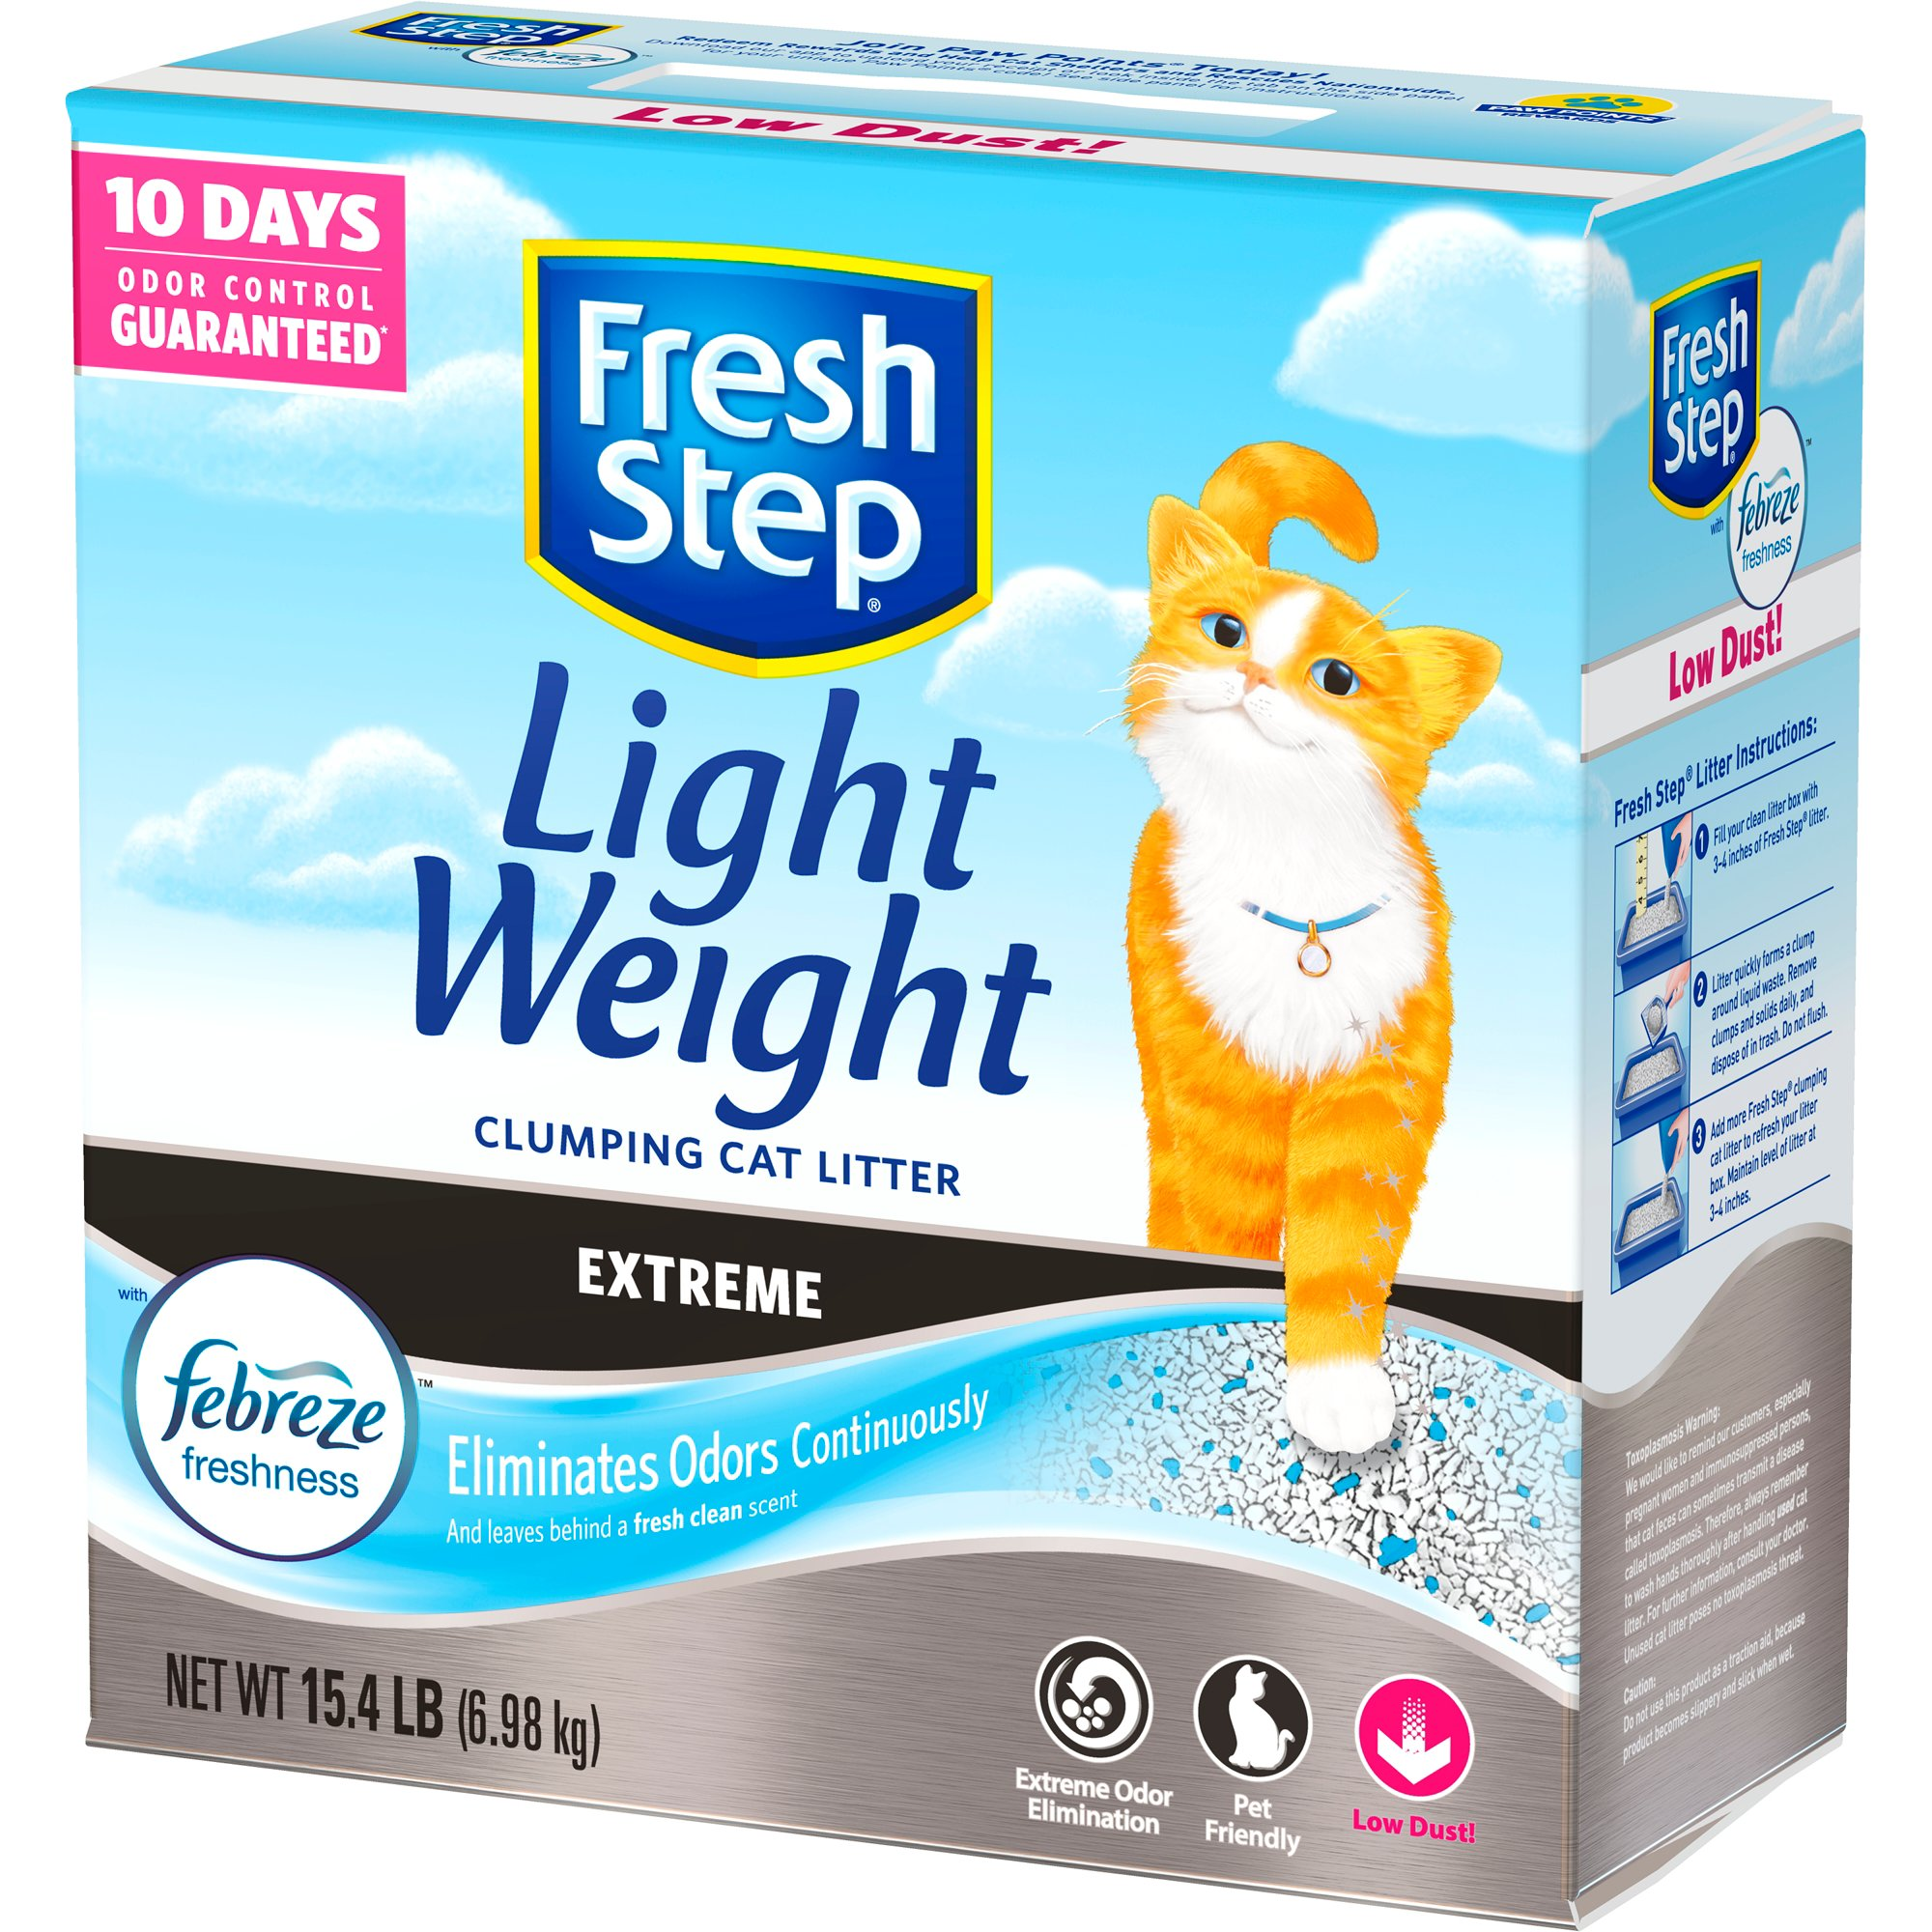 Petco Fresh Step Cat Litter